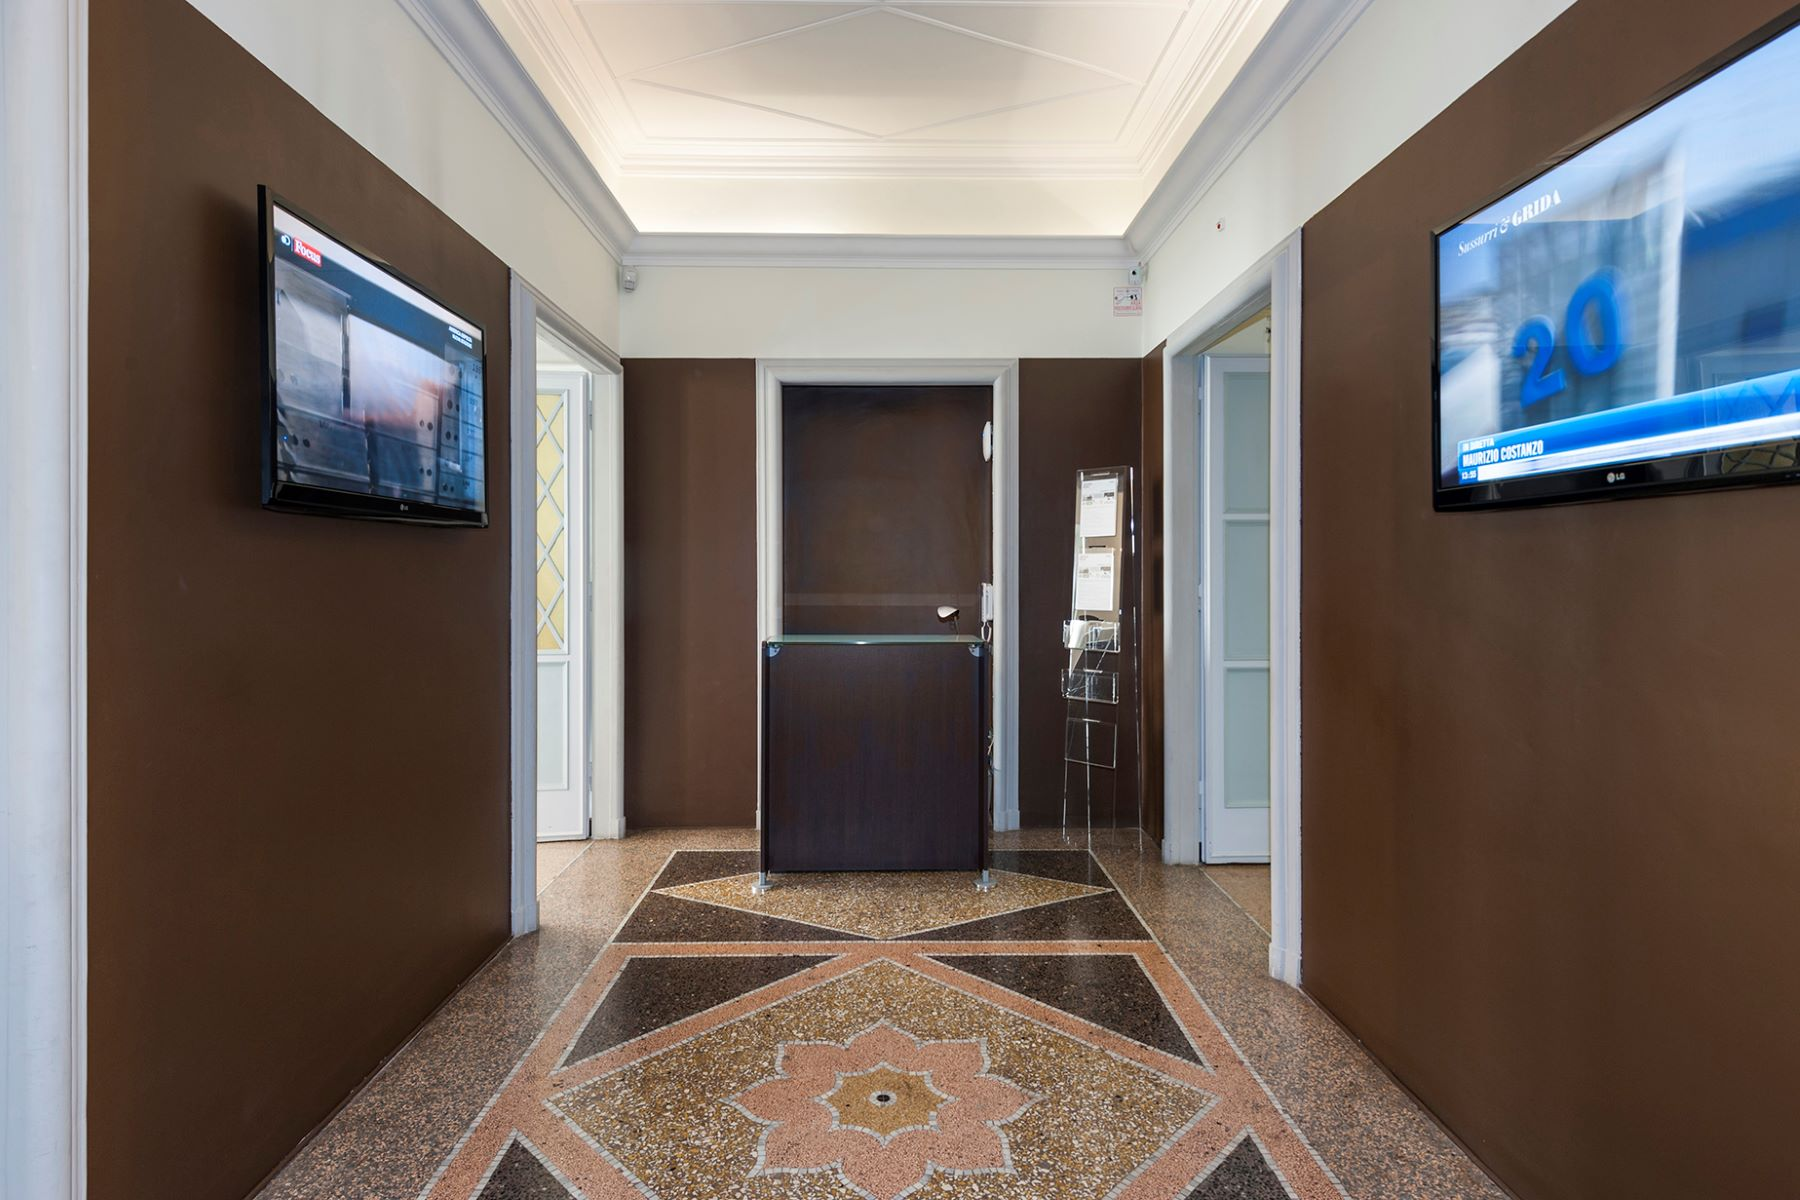 Additional photo for property listing at High prestige office Piazzale delle belle Arti Rome, Rome 00197 Italy